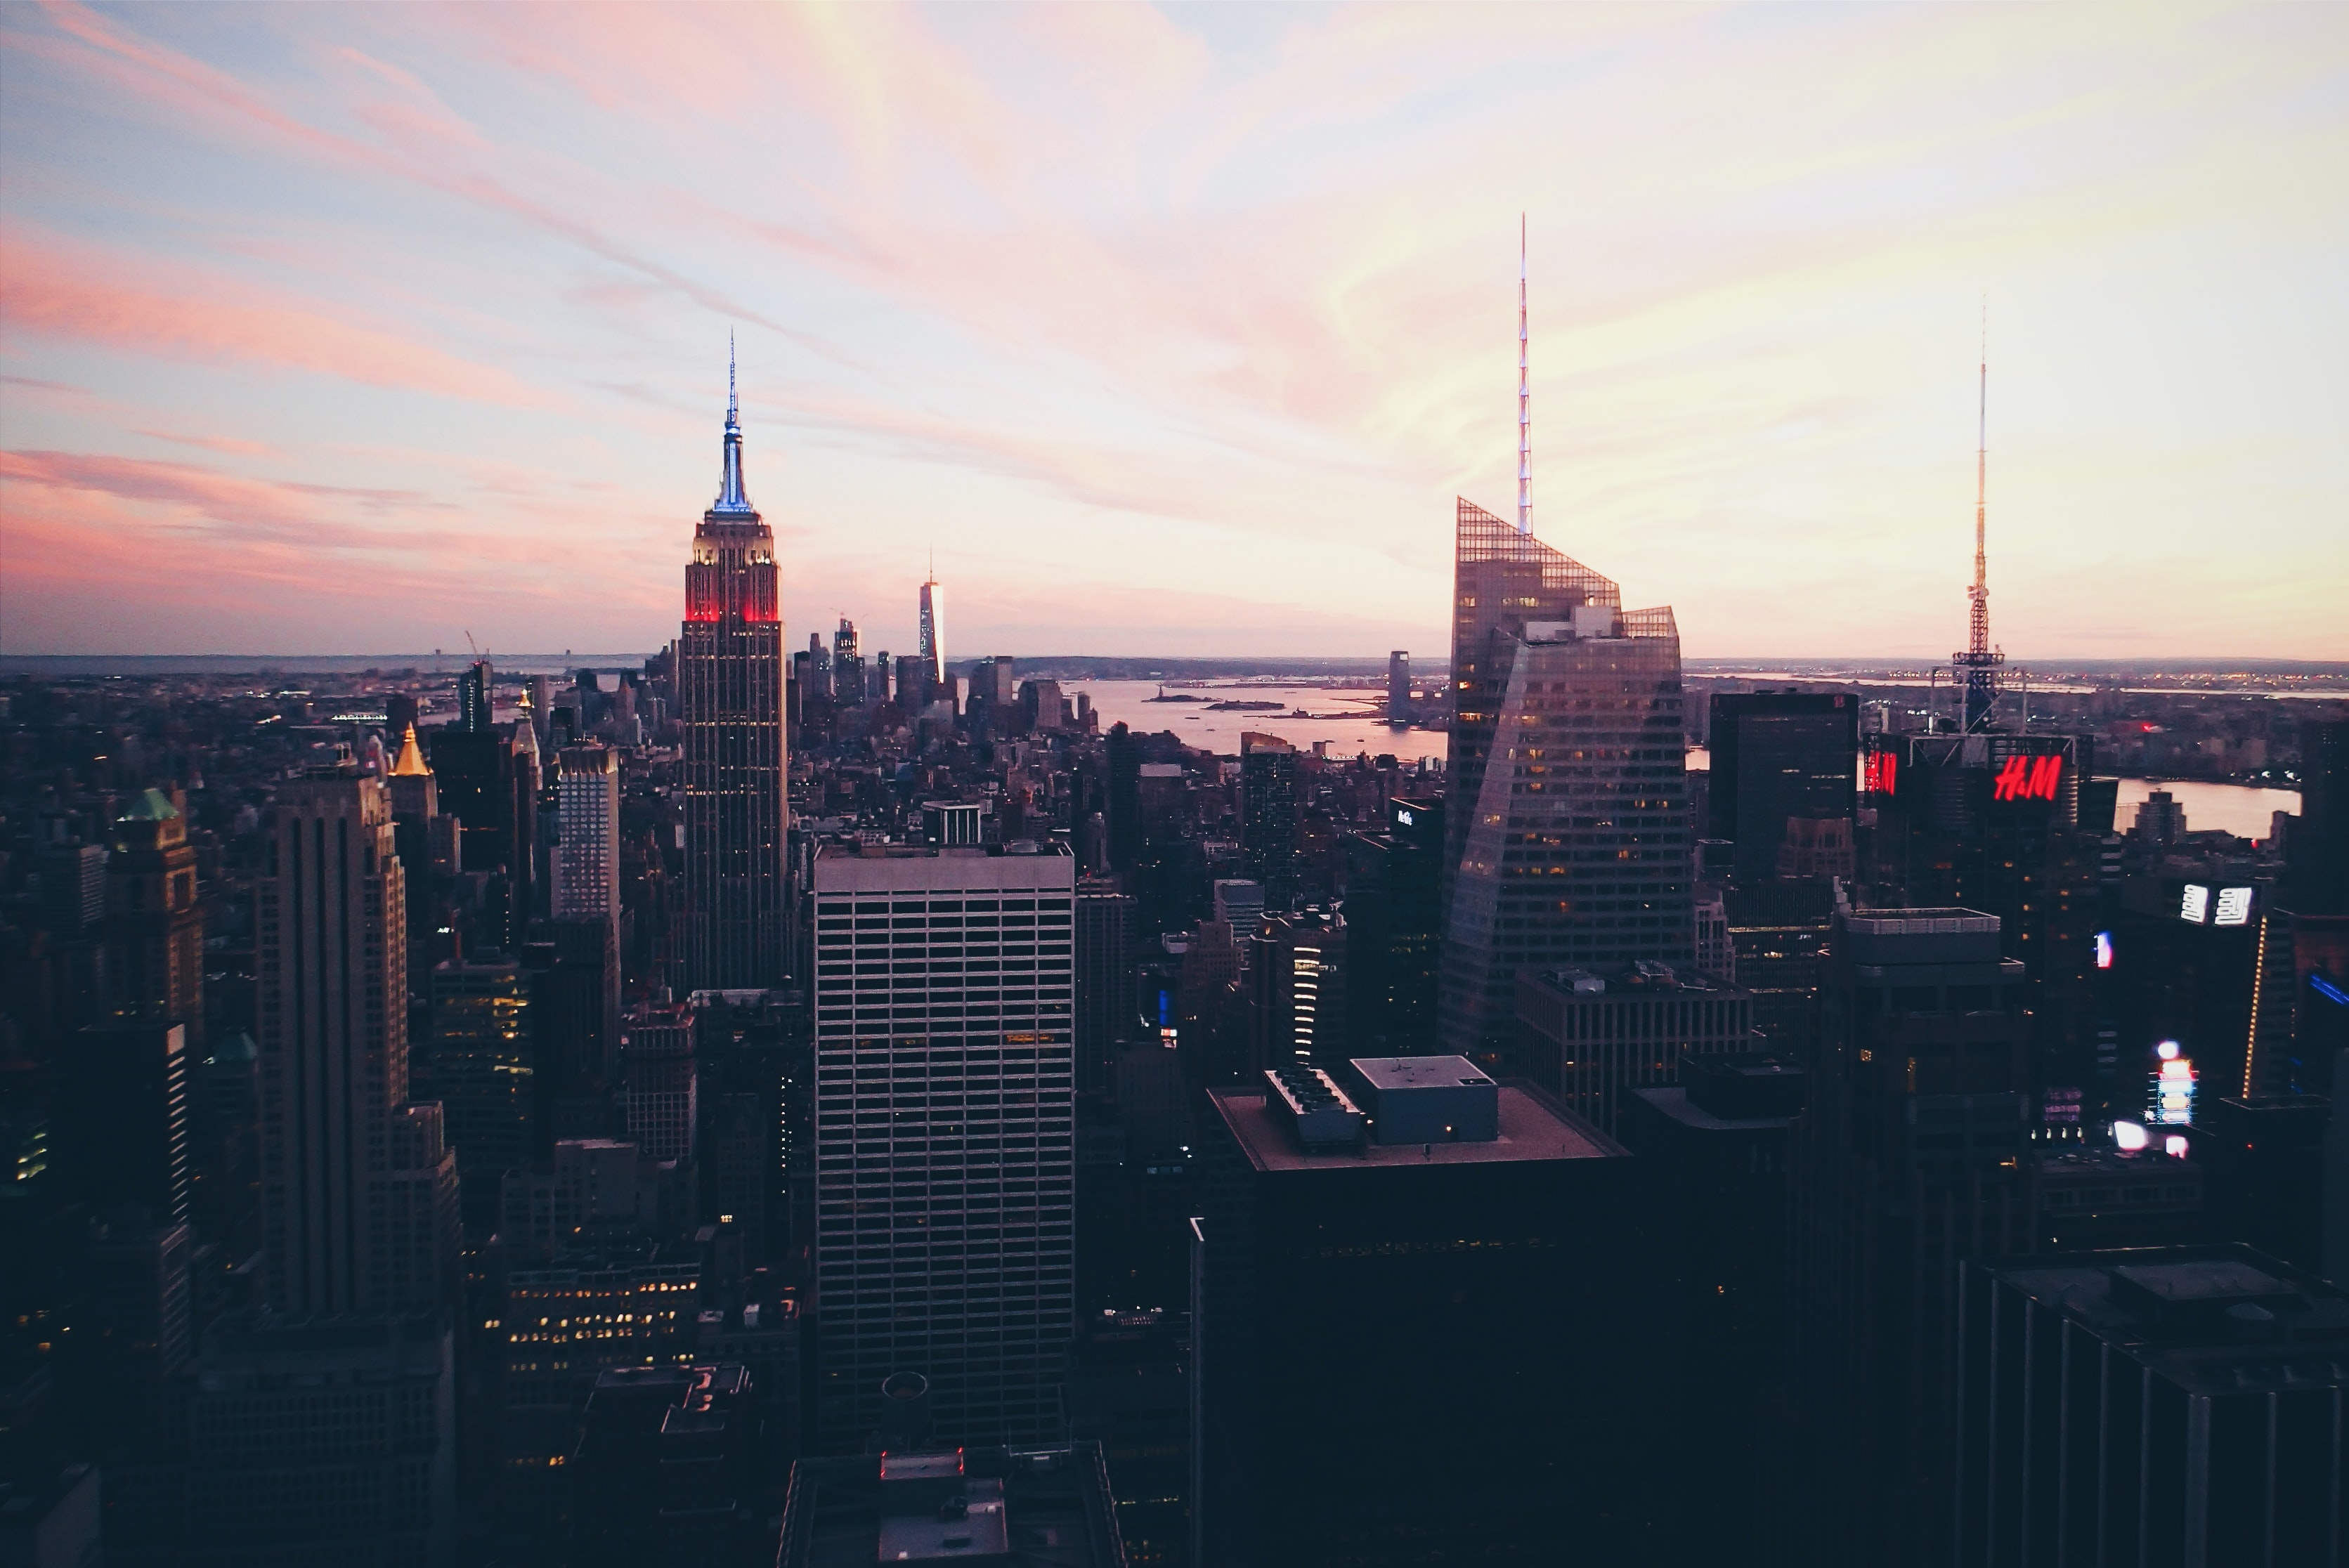 A panoramic view of New York City skyscrapers during sunset.